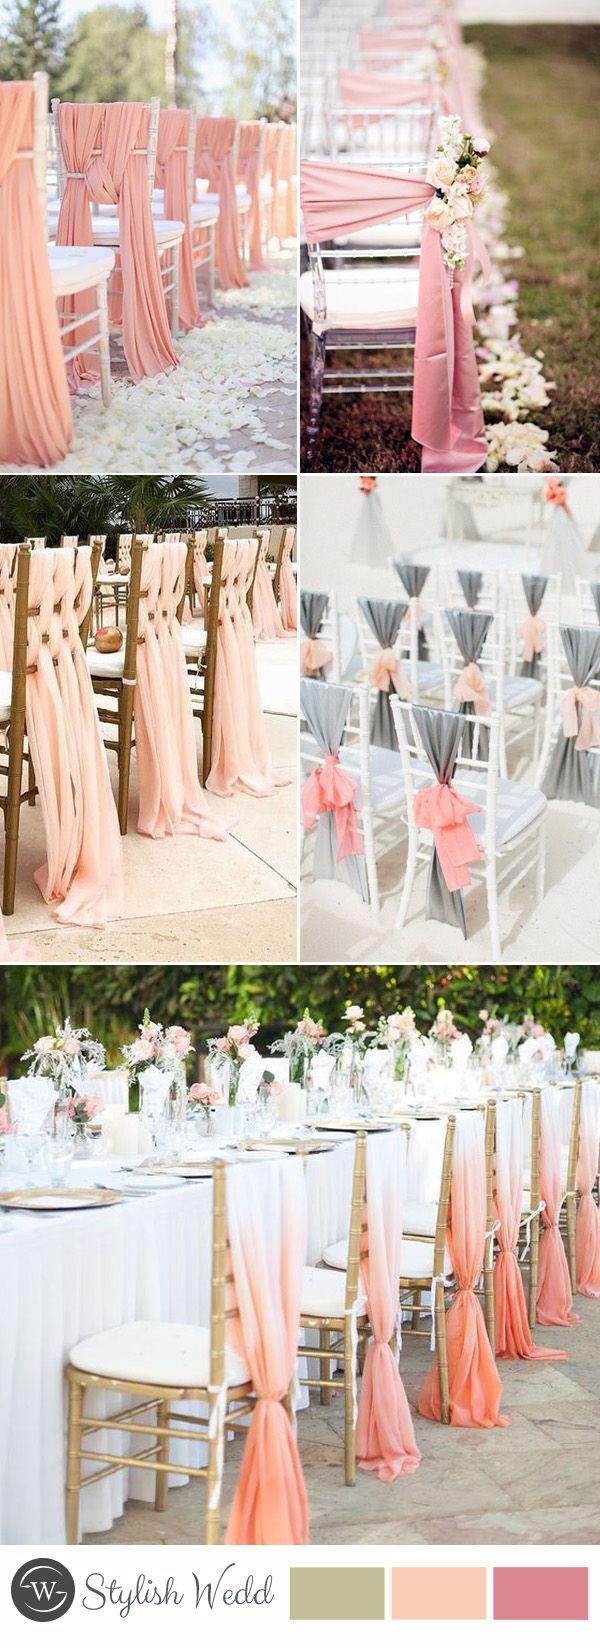 141 best Peach Wedding images on Pinterest | Flower arrangements ...